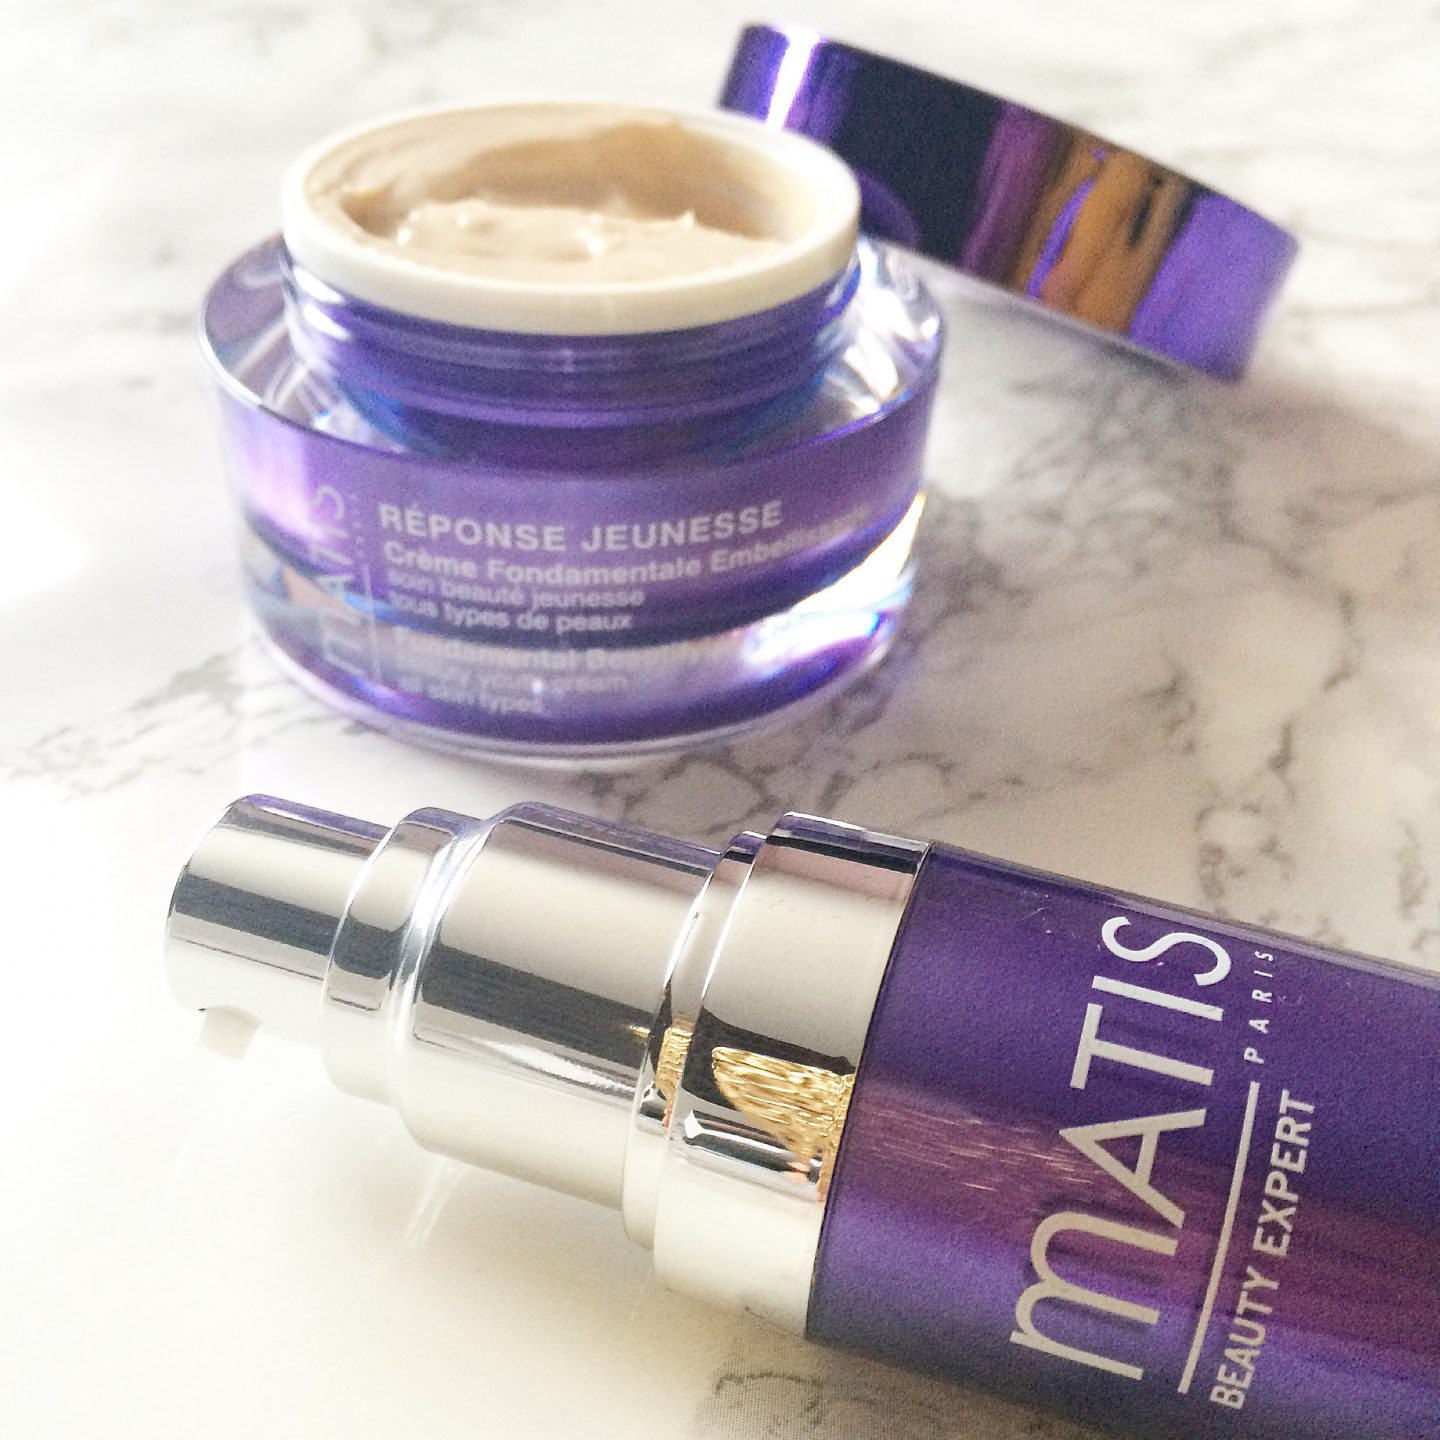 Matis Response Jeunesse Cream and Serum